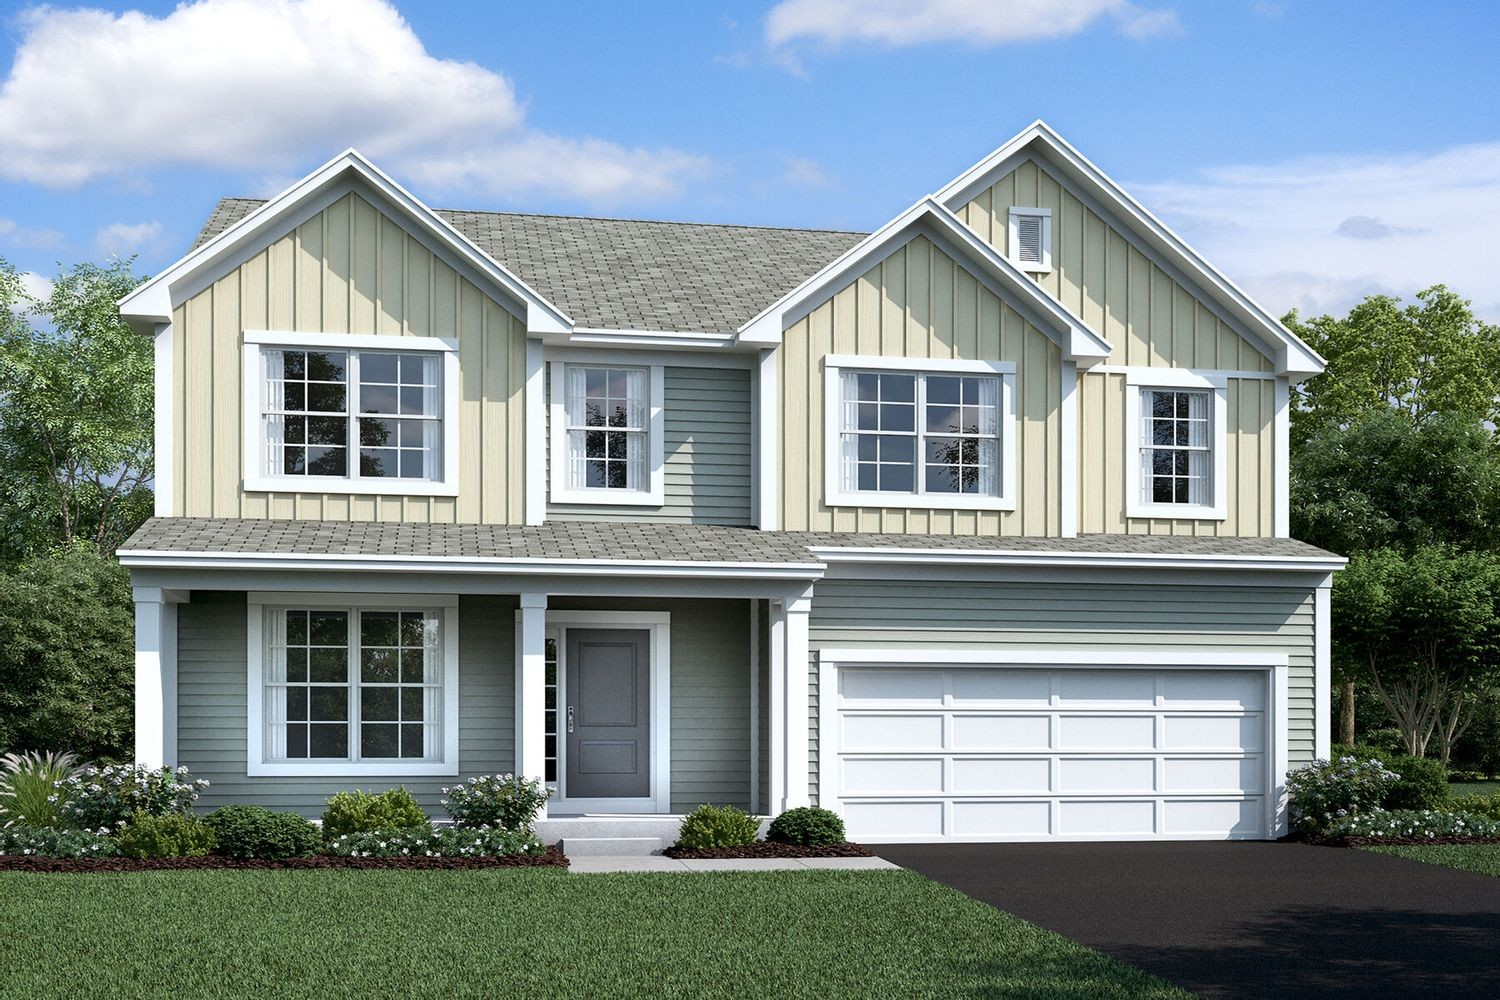 Move In Ready New Home In Homes at Foxfire Community